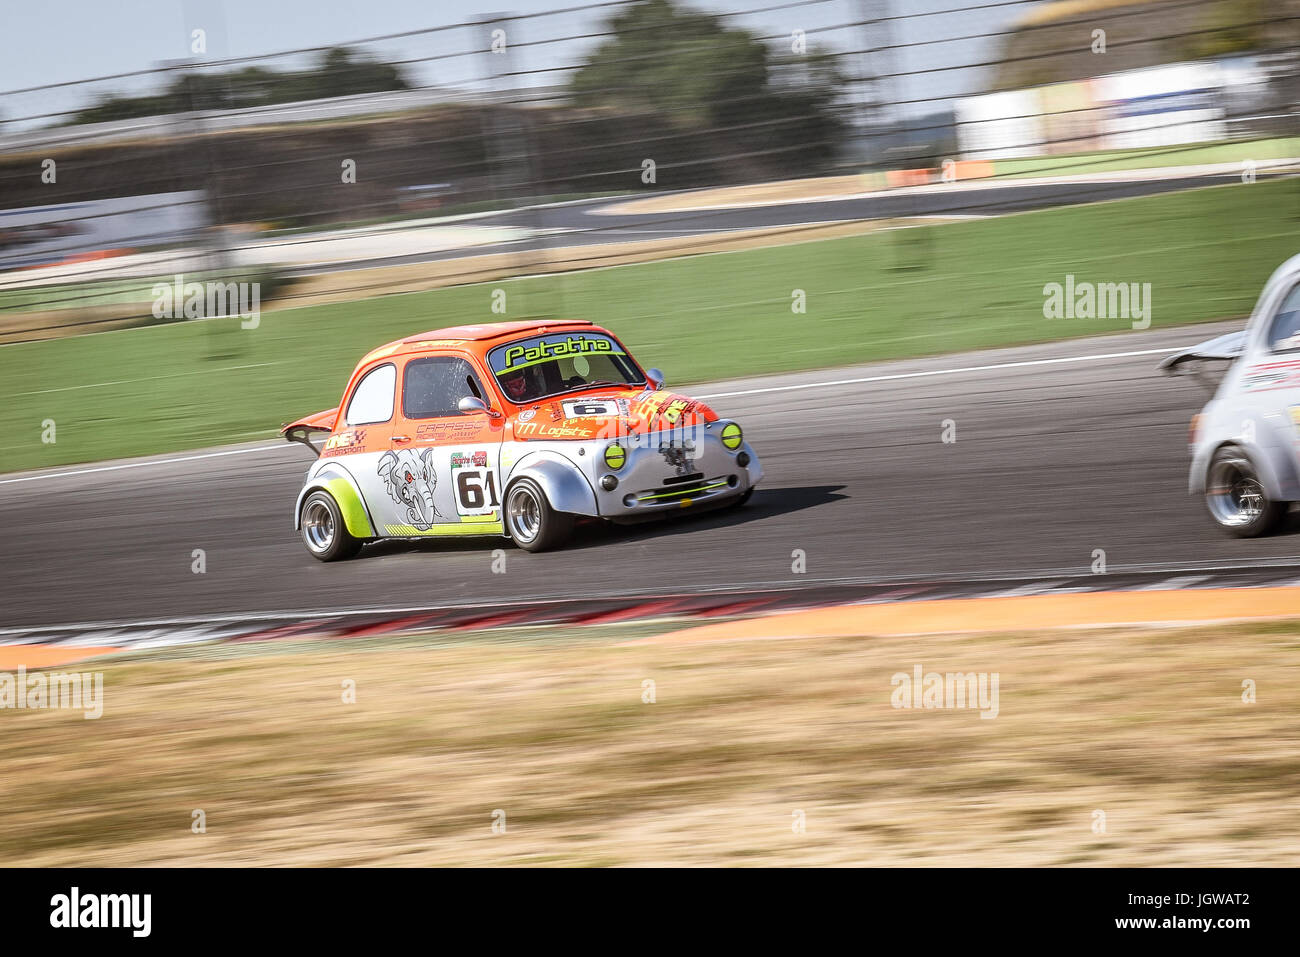 Italian Bicilindriche Cup Fiat 500 Racing Car In Action During The